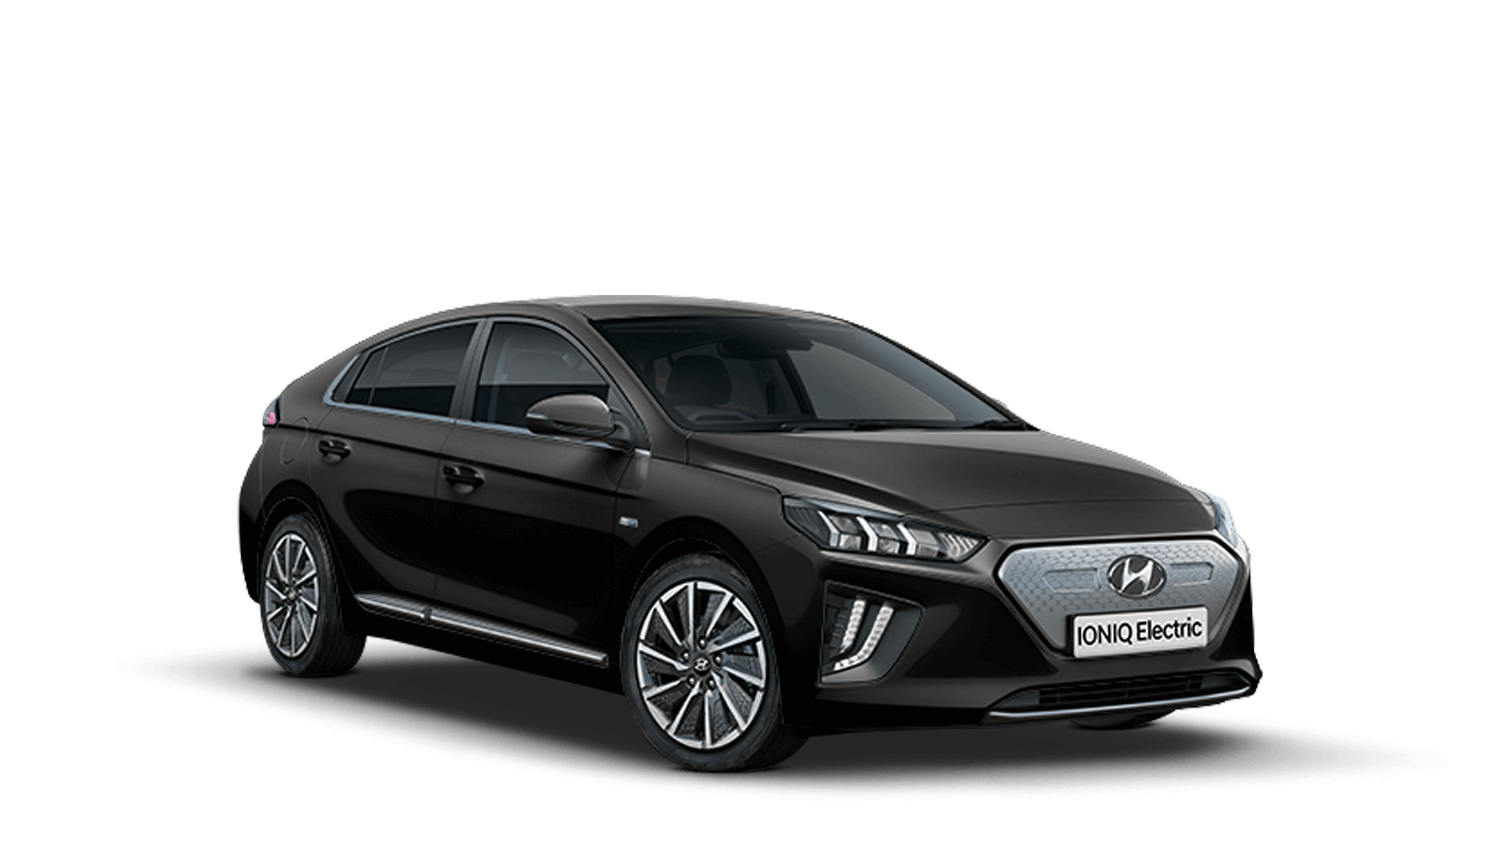 Phantom Black Hyundai IONIQ Electric